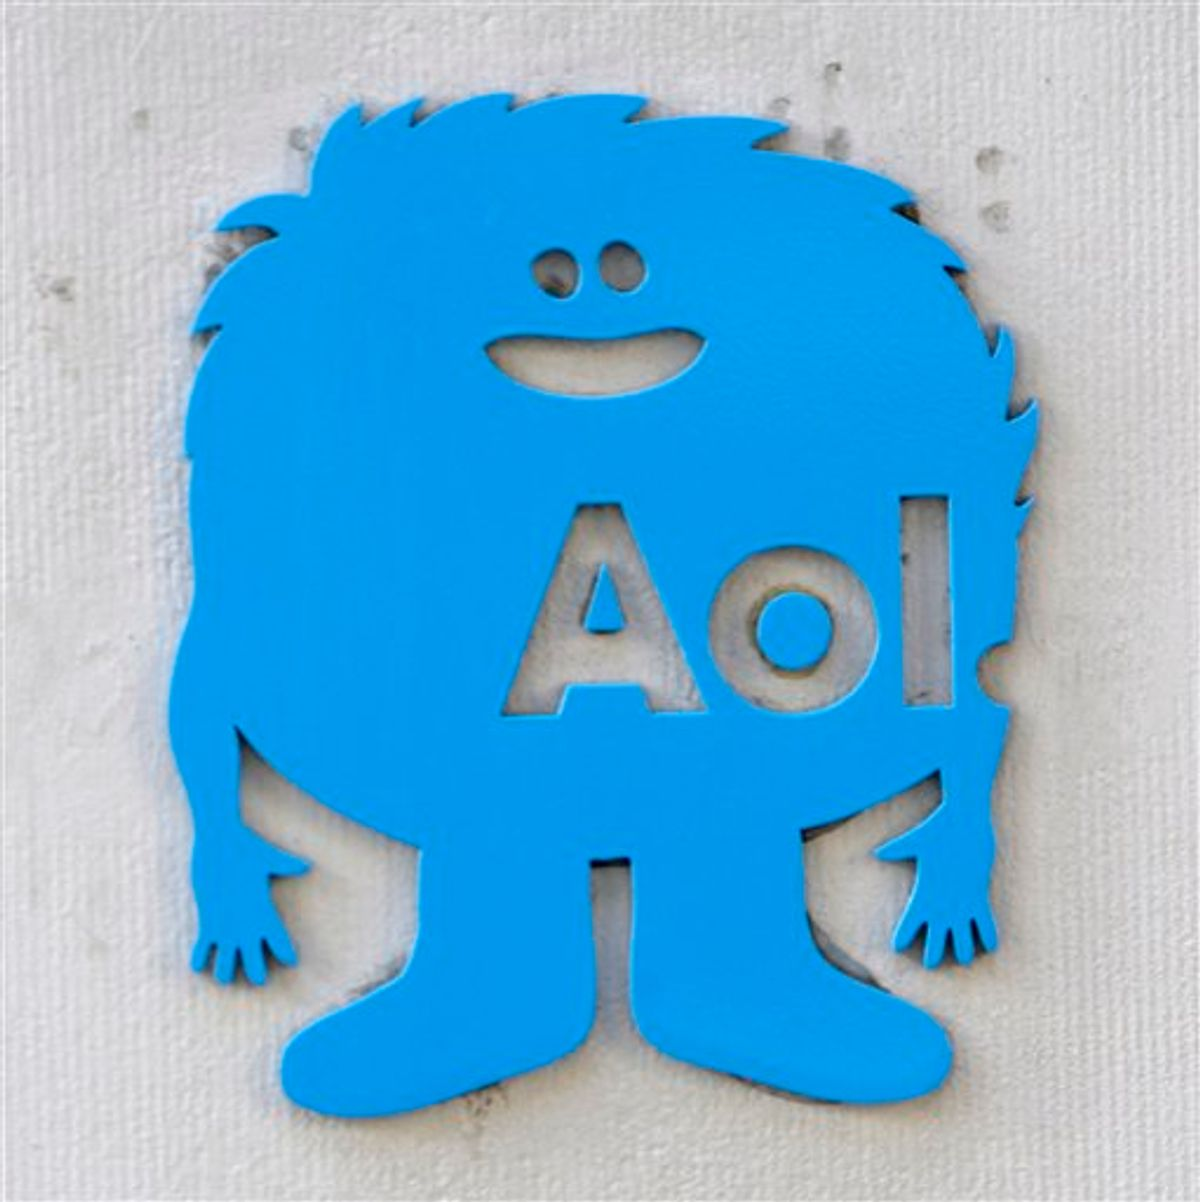 A small AOL placard is displayed on their offices in New York, Monday, Feb. 7, 2011. Internet company AOL Inc. is buying news hub Huffington Post in a $315 million deal that represents a bold bet on the future of online news. (AP Photo/Seth Wenig) (AP)